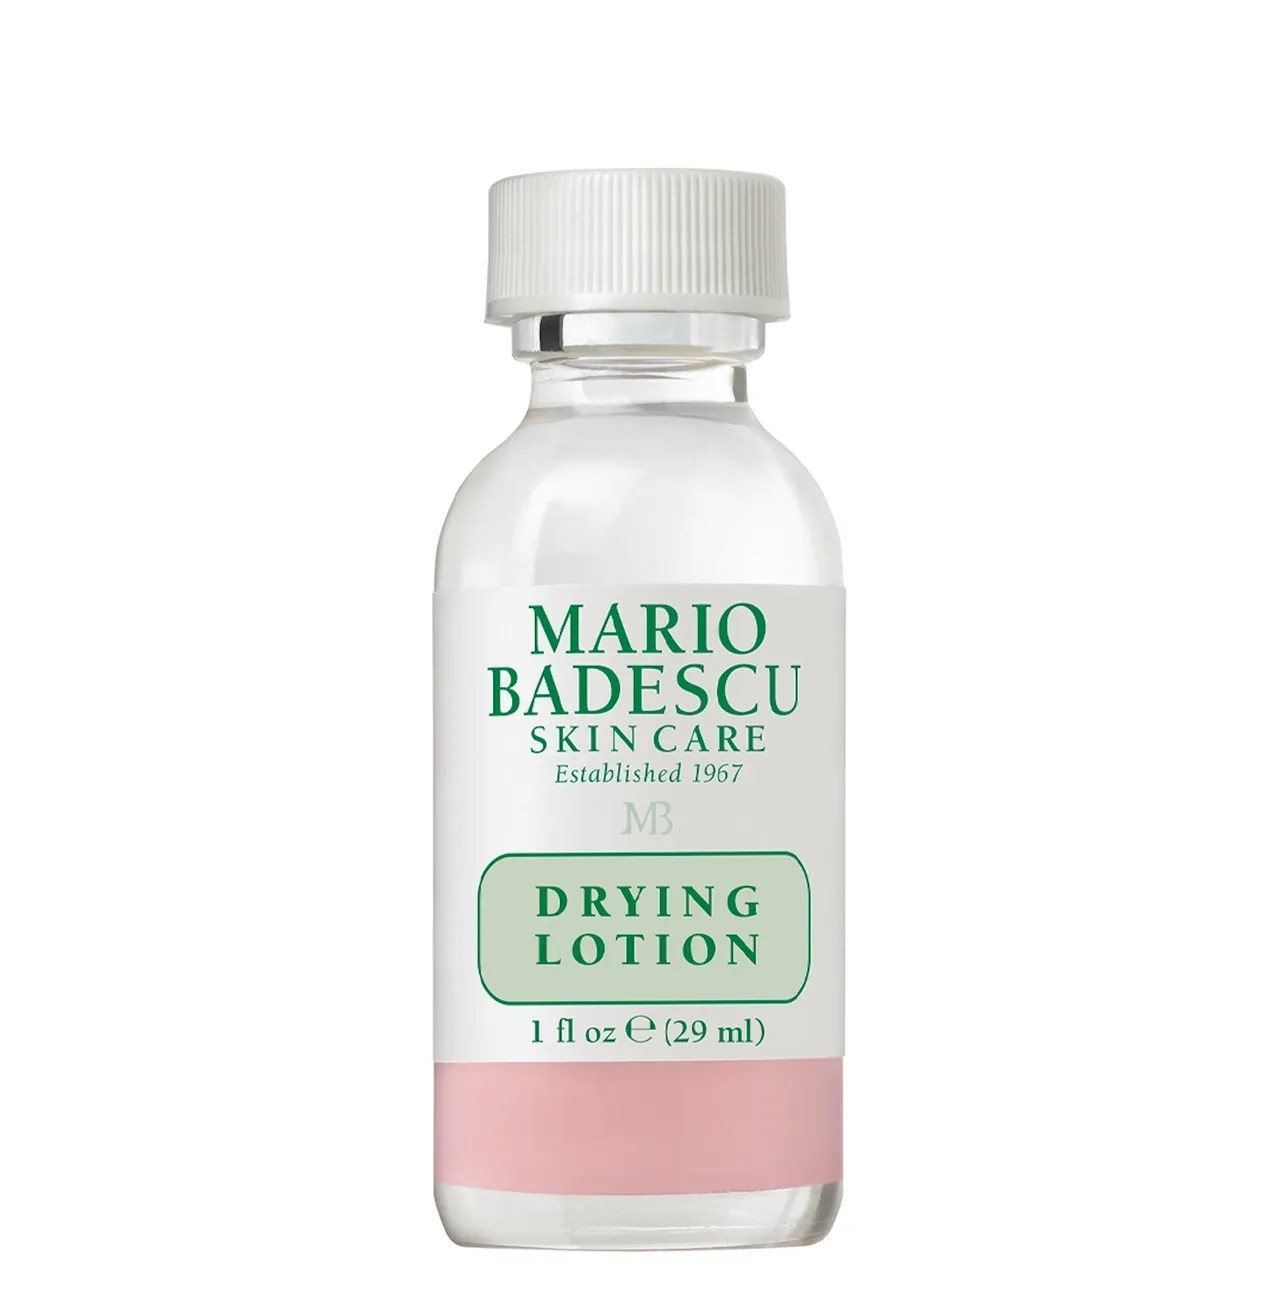 Mario Badescu Drying Lotion on white background